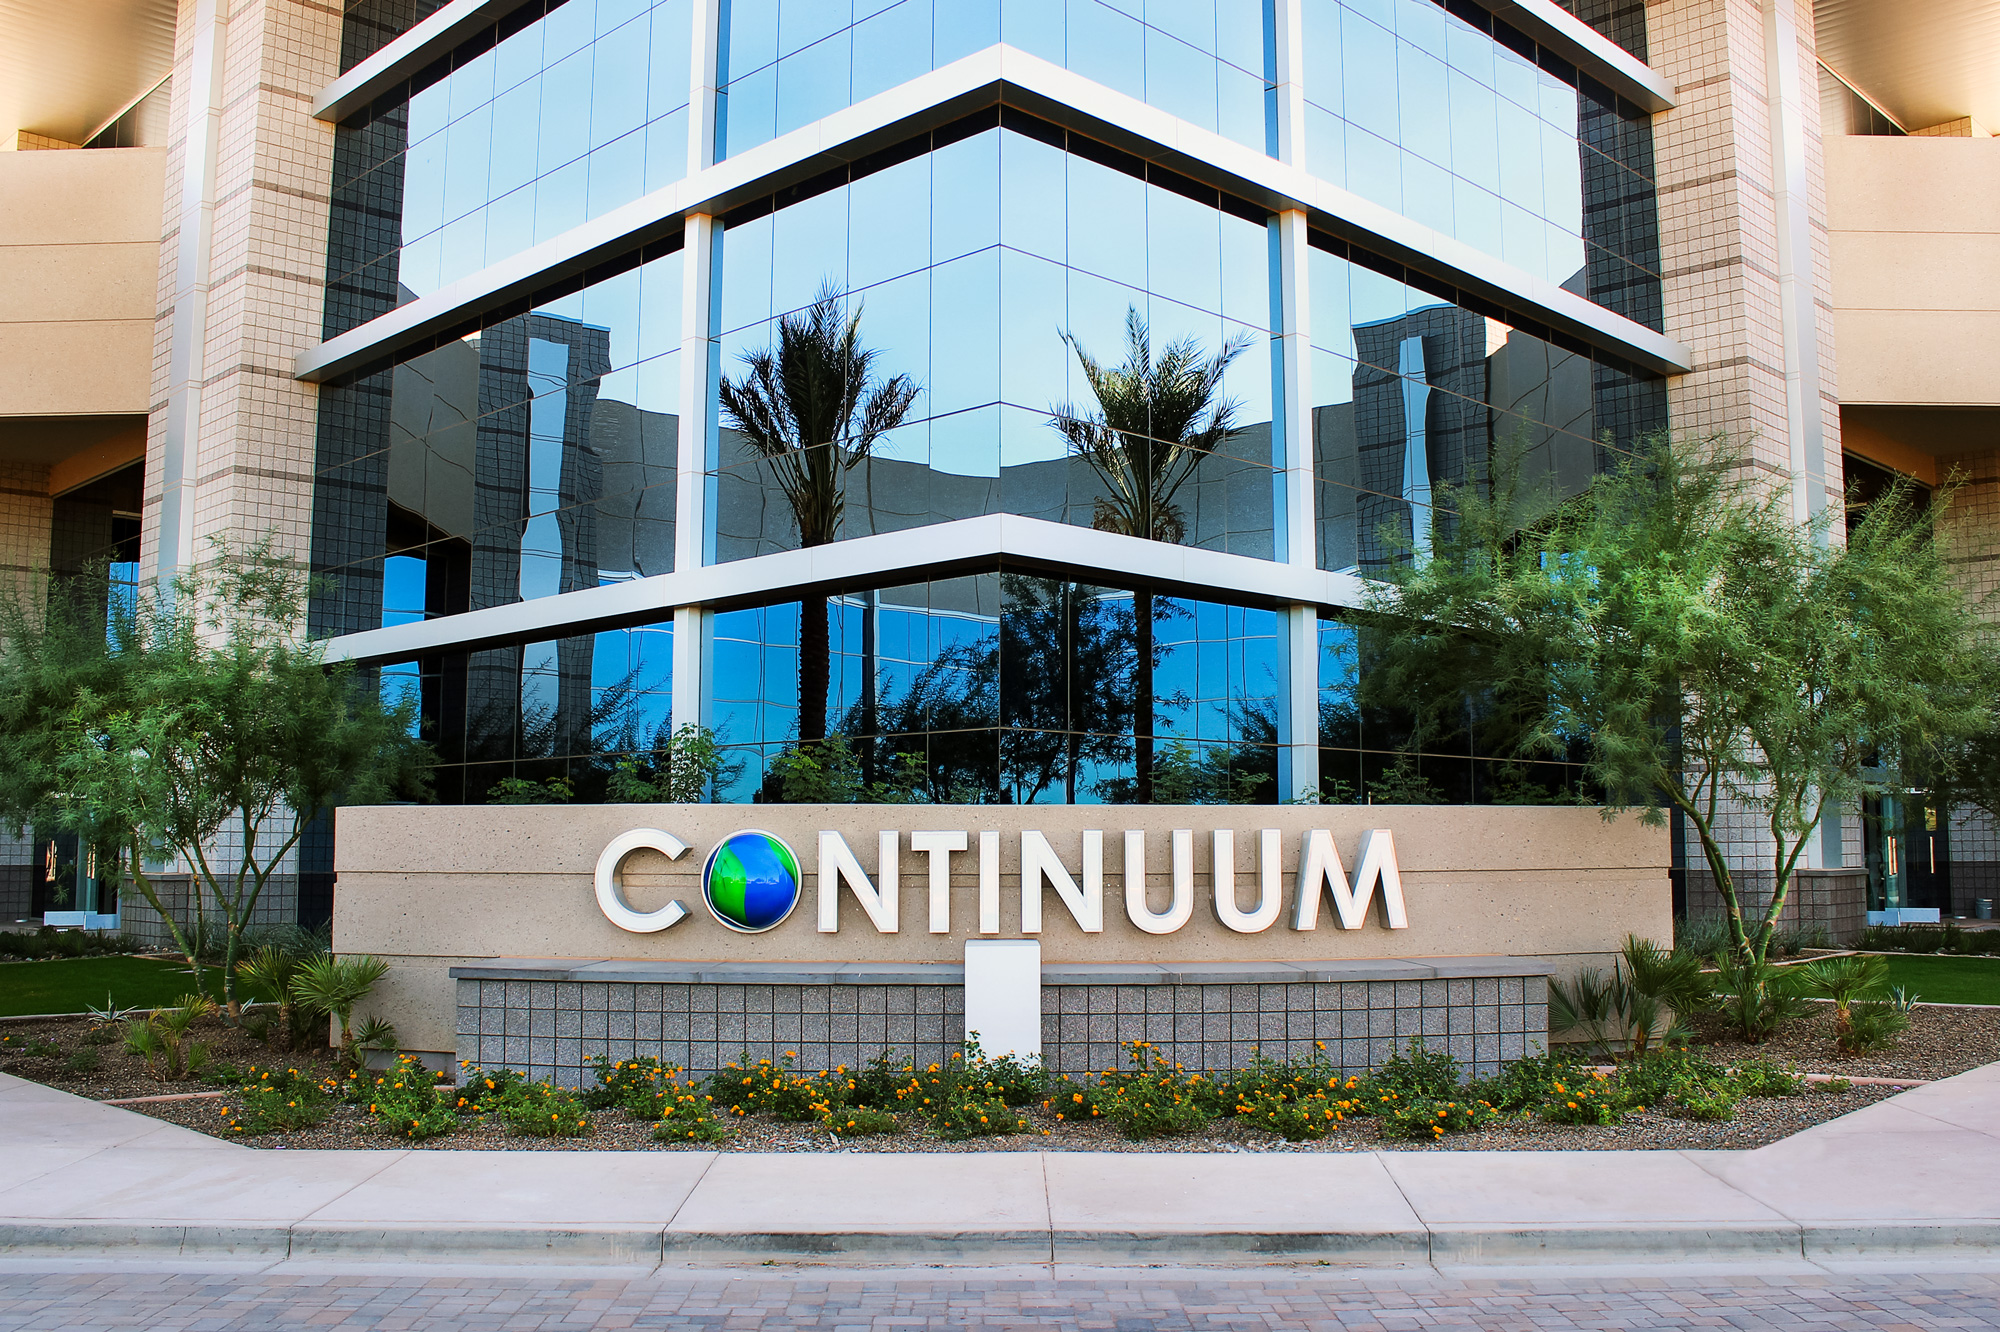 The project's largest multi-tenant building is identified with a face lit landscape wall sign.